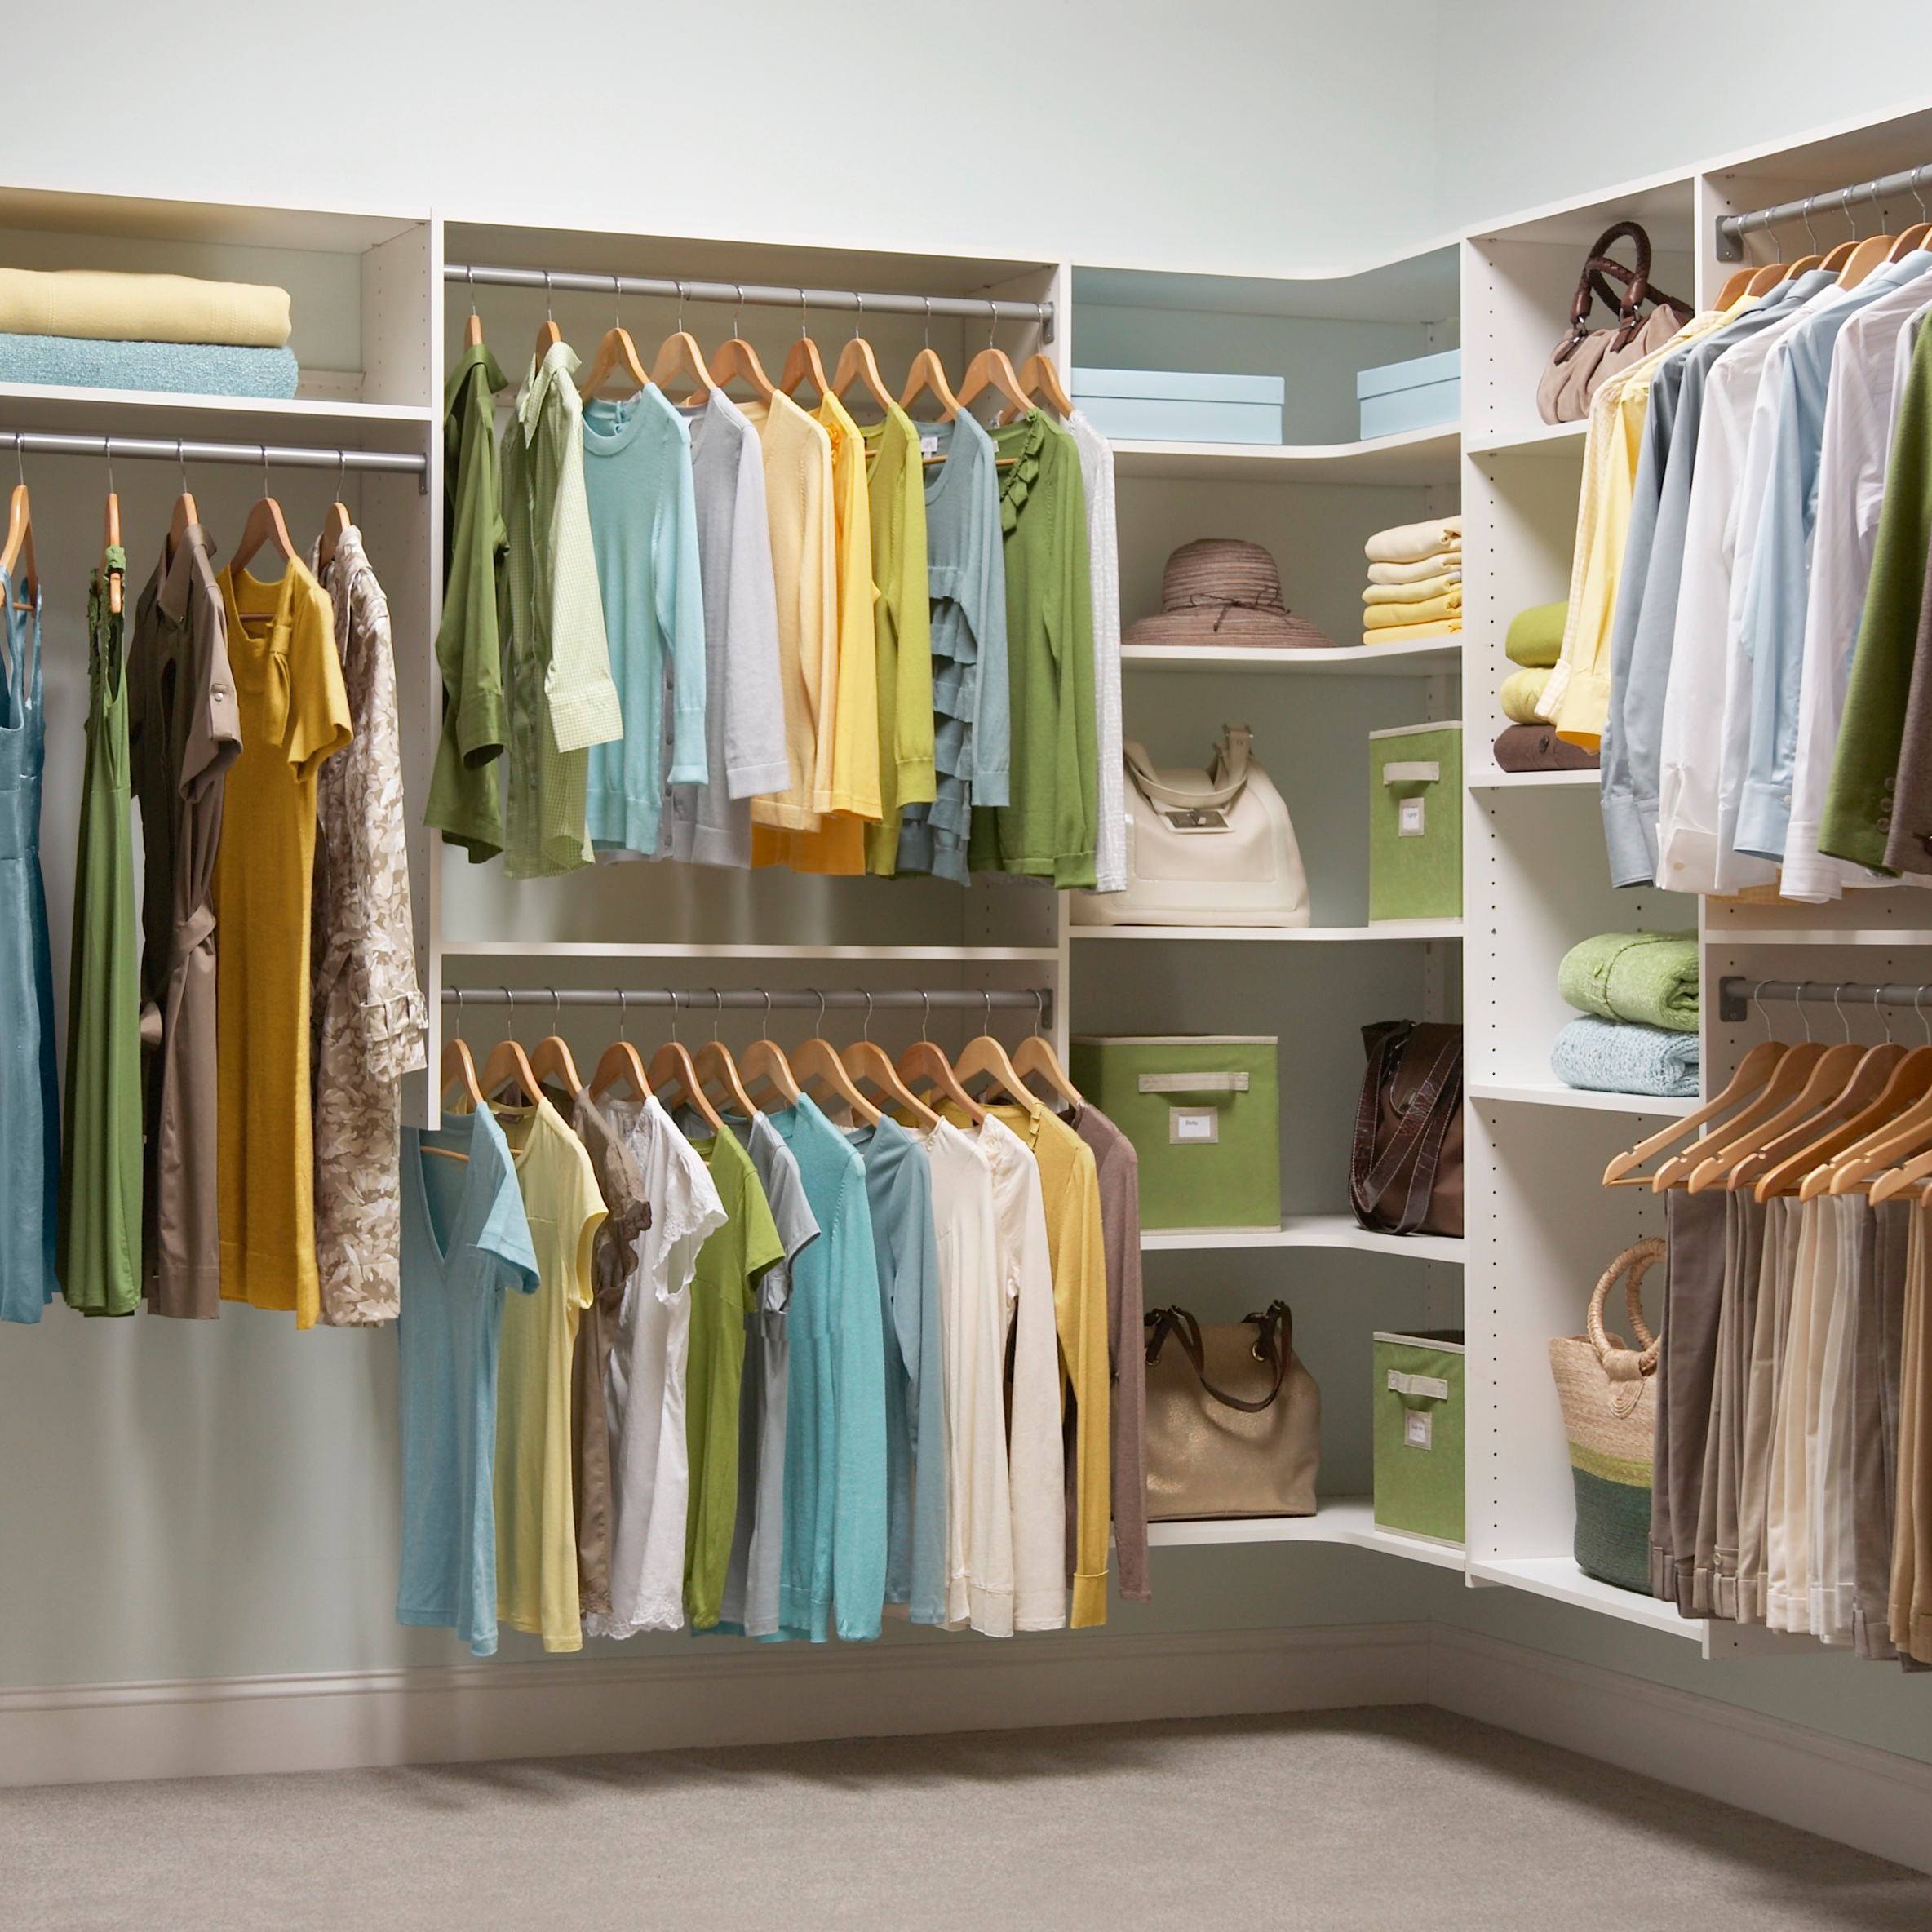 Minimalist White Shelves Units With Steel Hanging Rods Sets Hanged Clothes  Piles Of Towels And Blankets